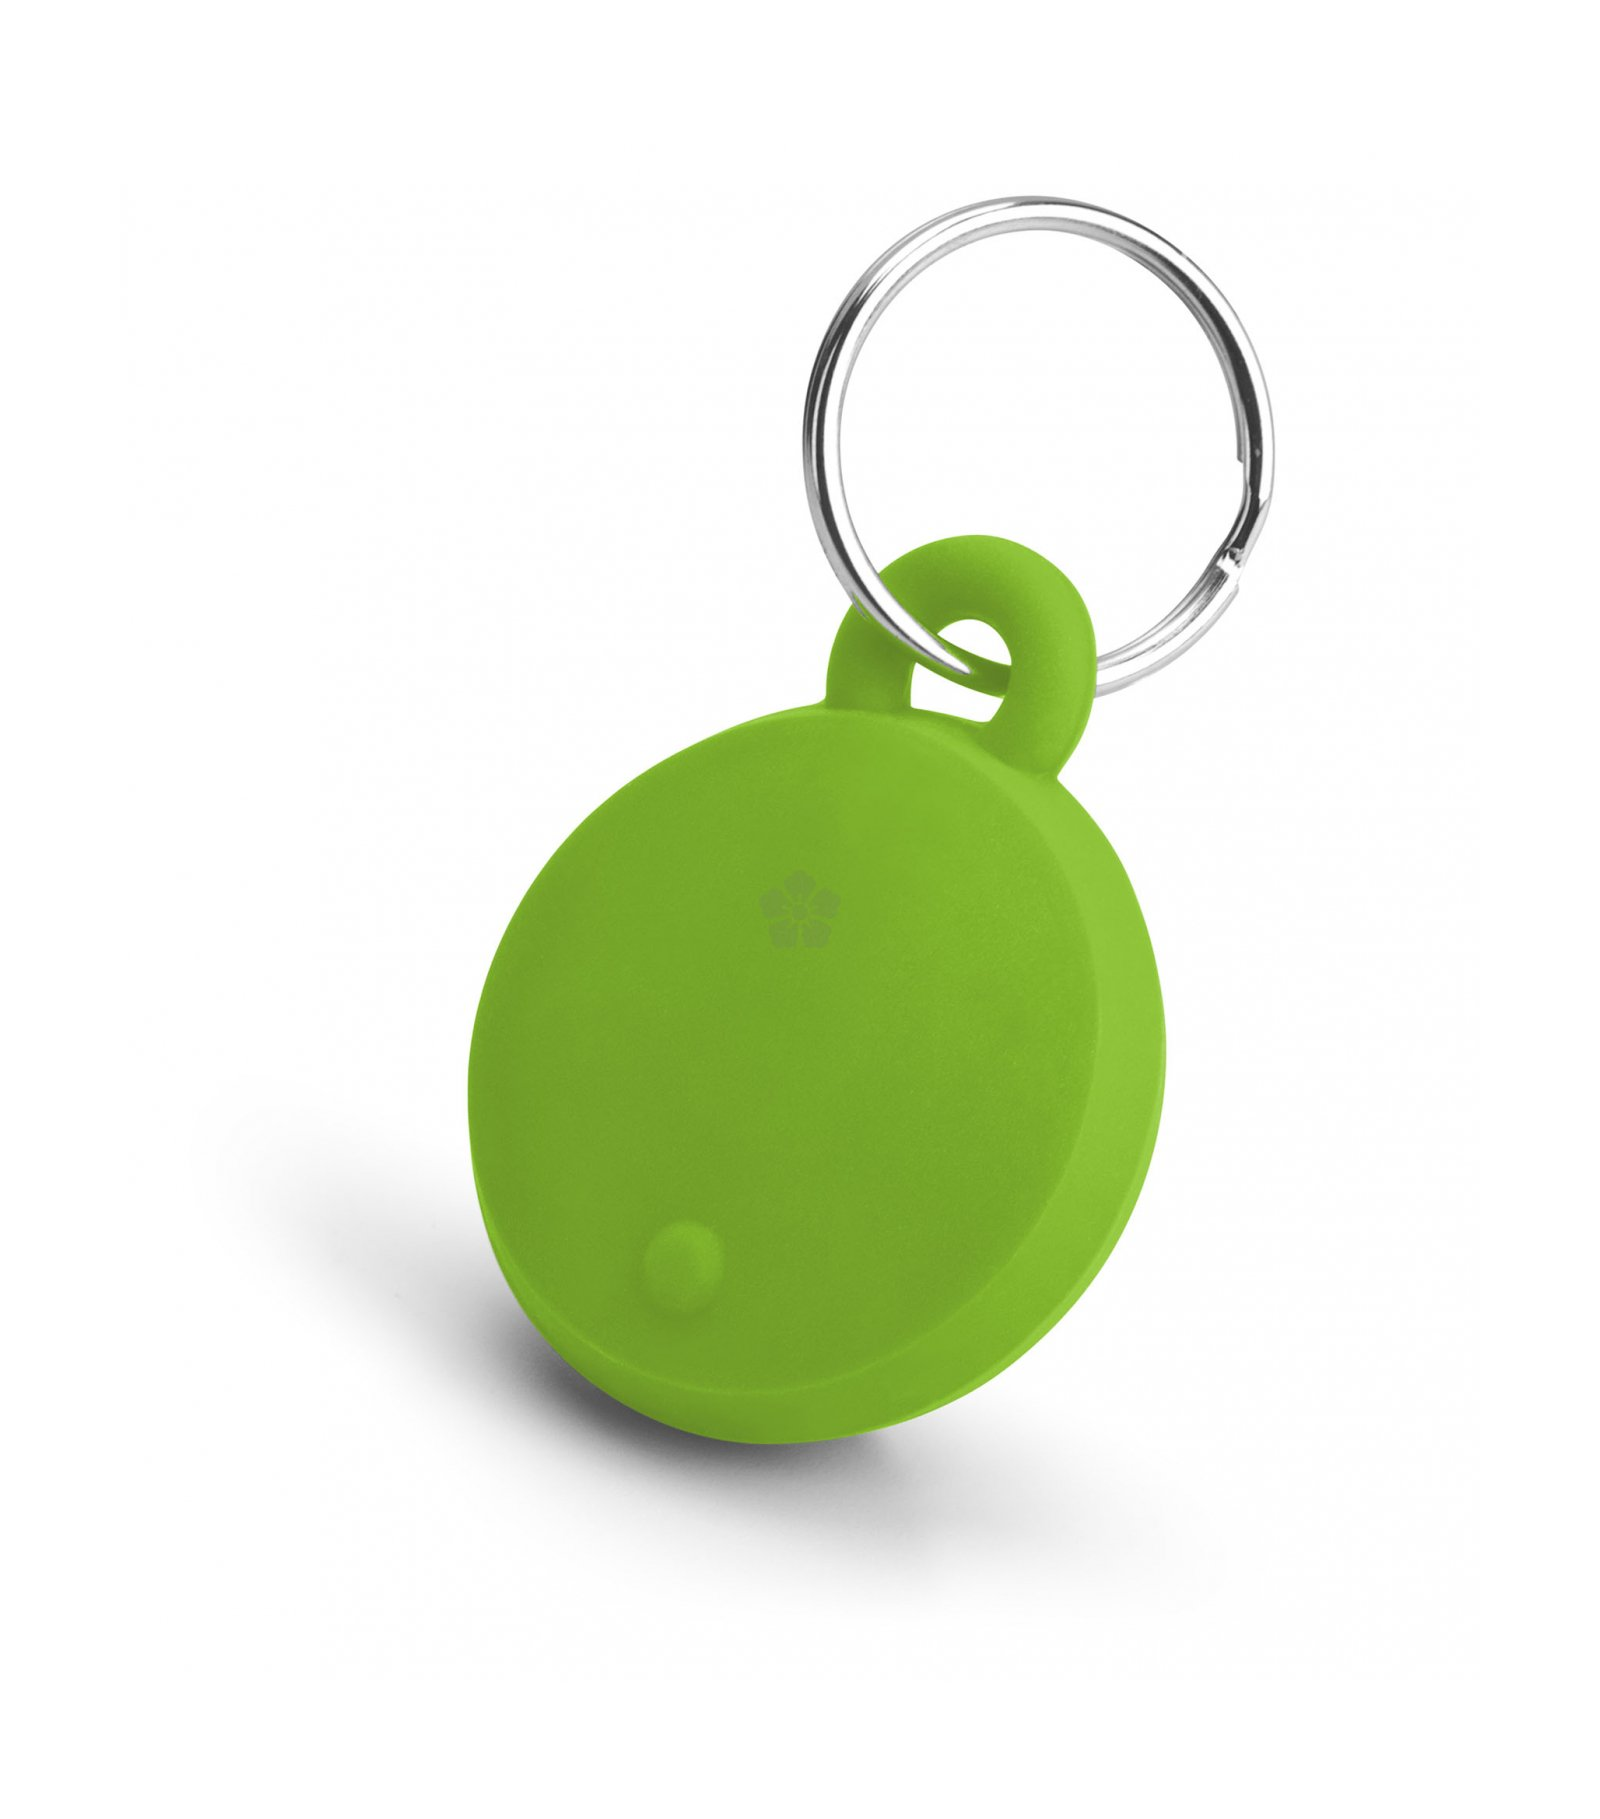 Promotional Find Me Key Chain Personalised By Mojo Promotions